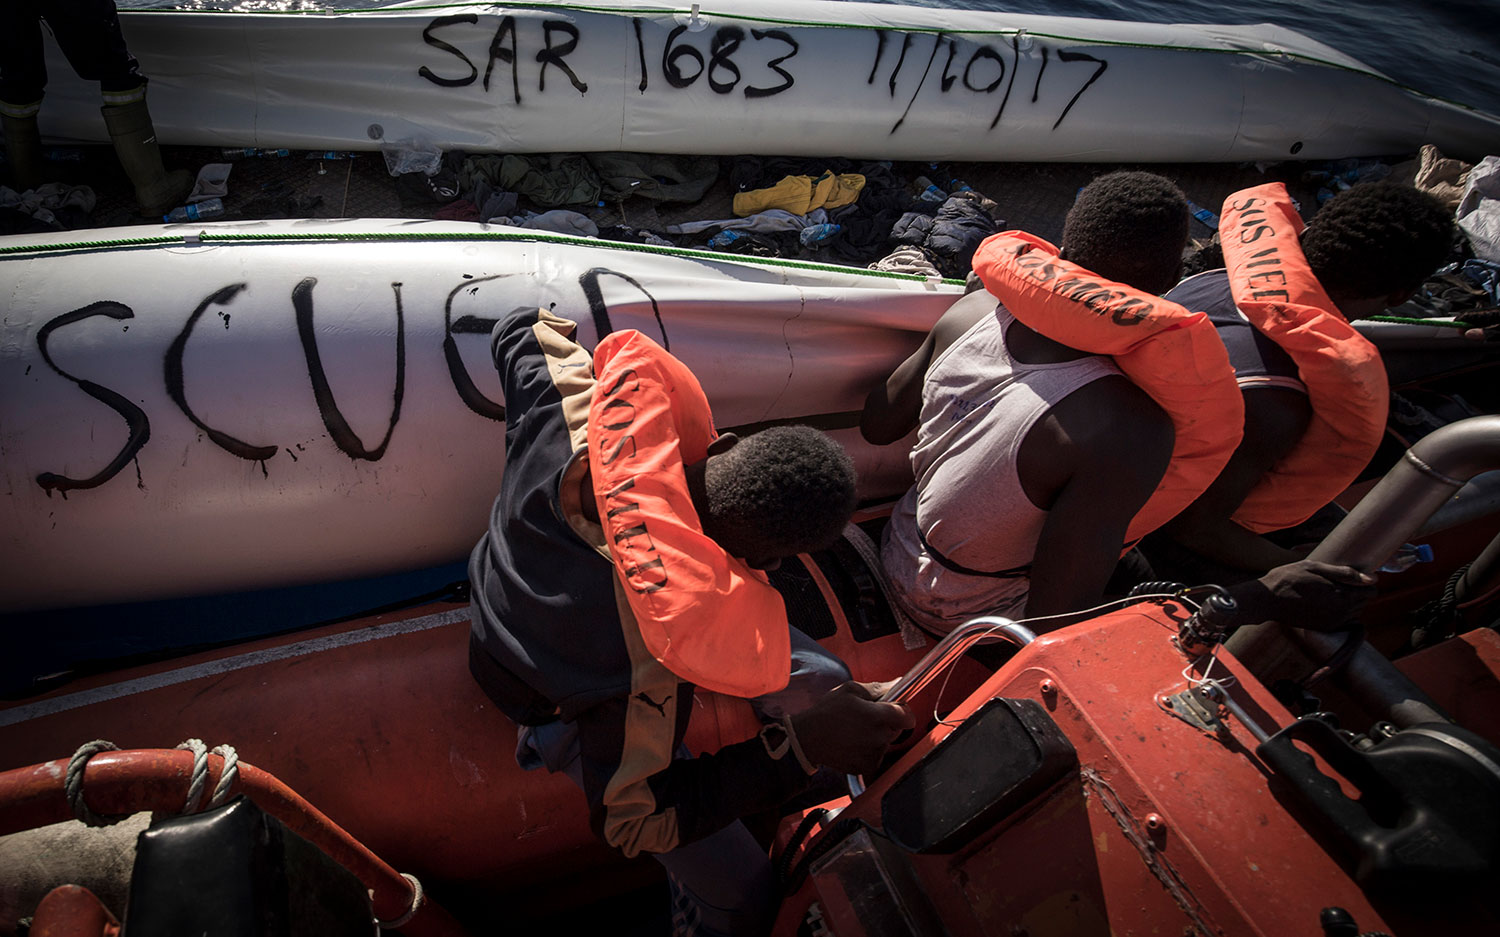 SOS MEDITERRANEE crew mark the rubber dinghy with the search-and-rescue (SAR) case number and date. October 11, 2017.